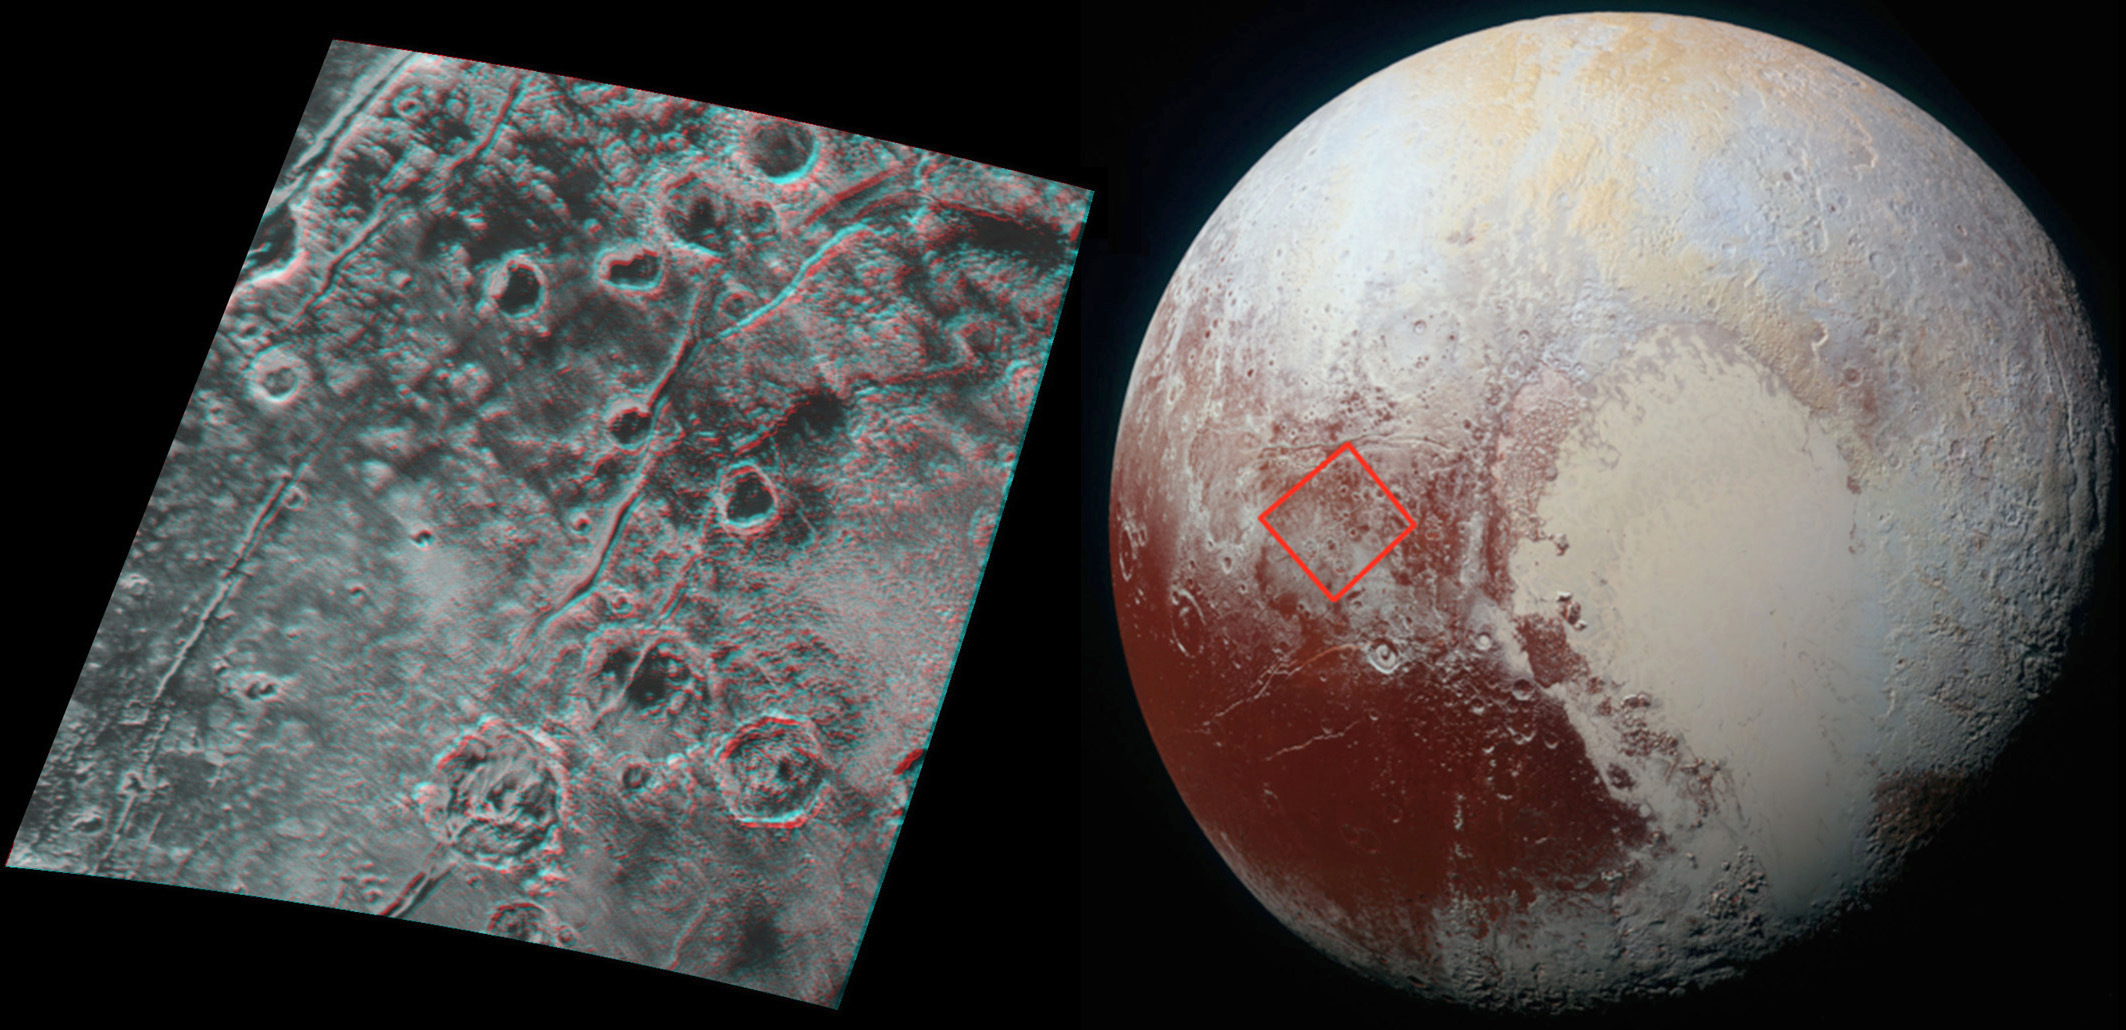 This 3-D image of Pluto, which requires red/blue stereo glasses for viewing, shows a region 180miles (300kilometres) across, centred near longitude 130°E, latitude 20°N (the red square in the global context image). North is to the upper left. The image shows an ancient, heavily cratered region of Pluto, dotted with low hills and cut by deep fractures indicating extension of Pluto's crust. Image credit: NASA/JHUAPL/SwRI.